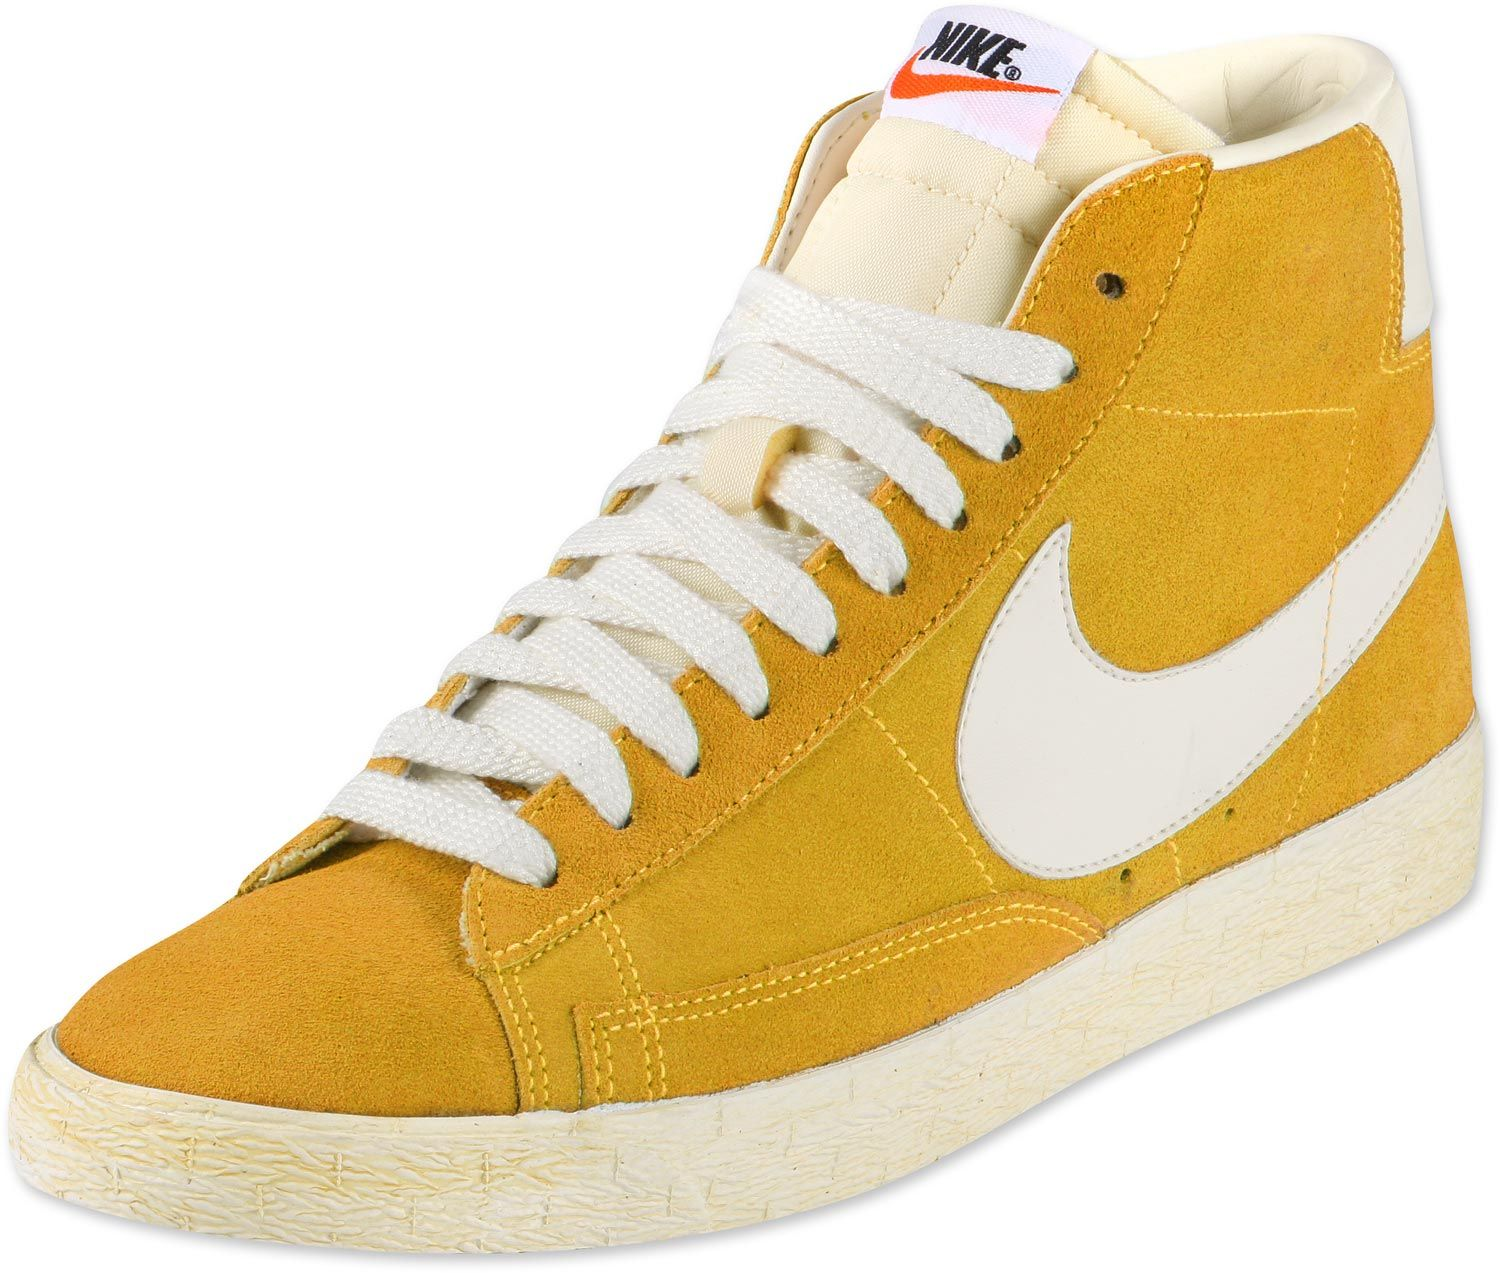 quality design 3a5d0 bed6d ... Cheap Nike Shoes Outlet Sal. Nike Blazer Hi Suede Schuhe gelb weiß